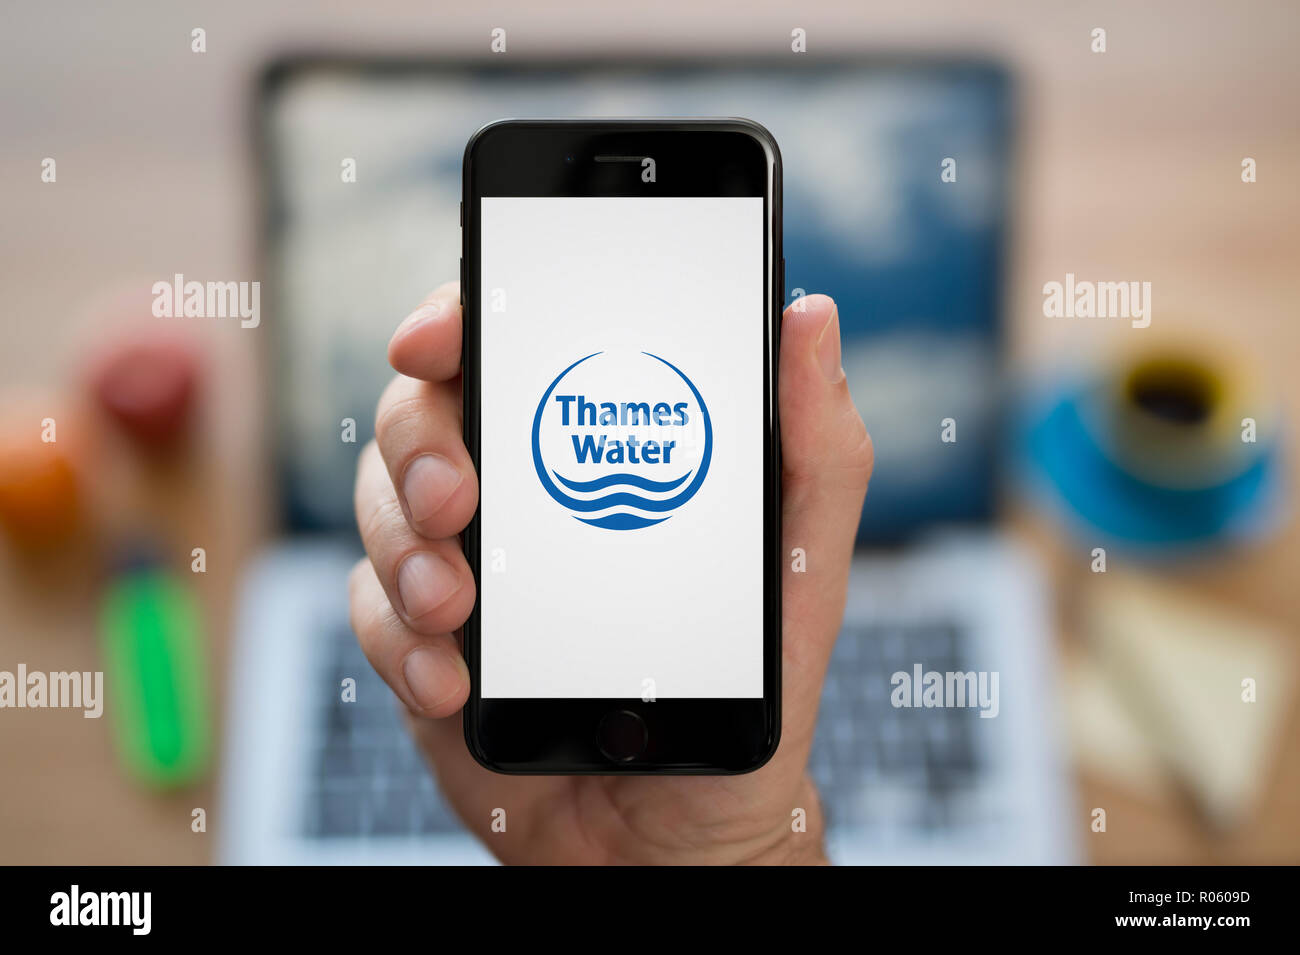 A man looks at his iPhone which displays the Thames Water logo, while sat at his computer desk (Editorial use only). - Stock Image